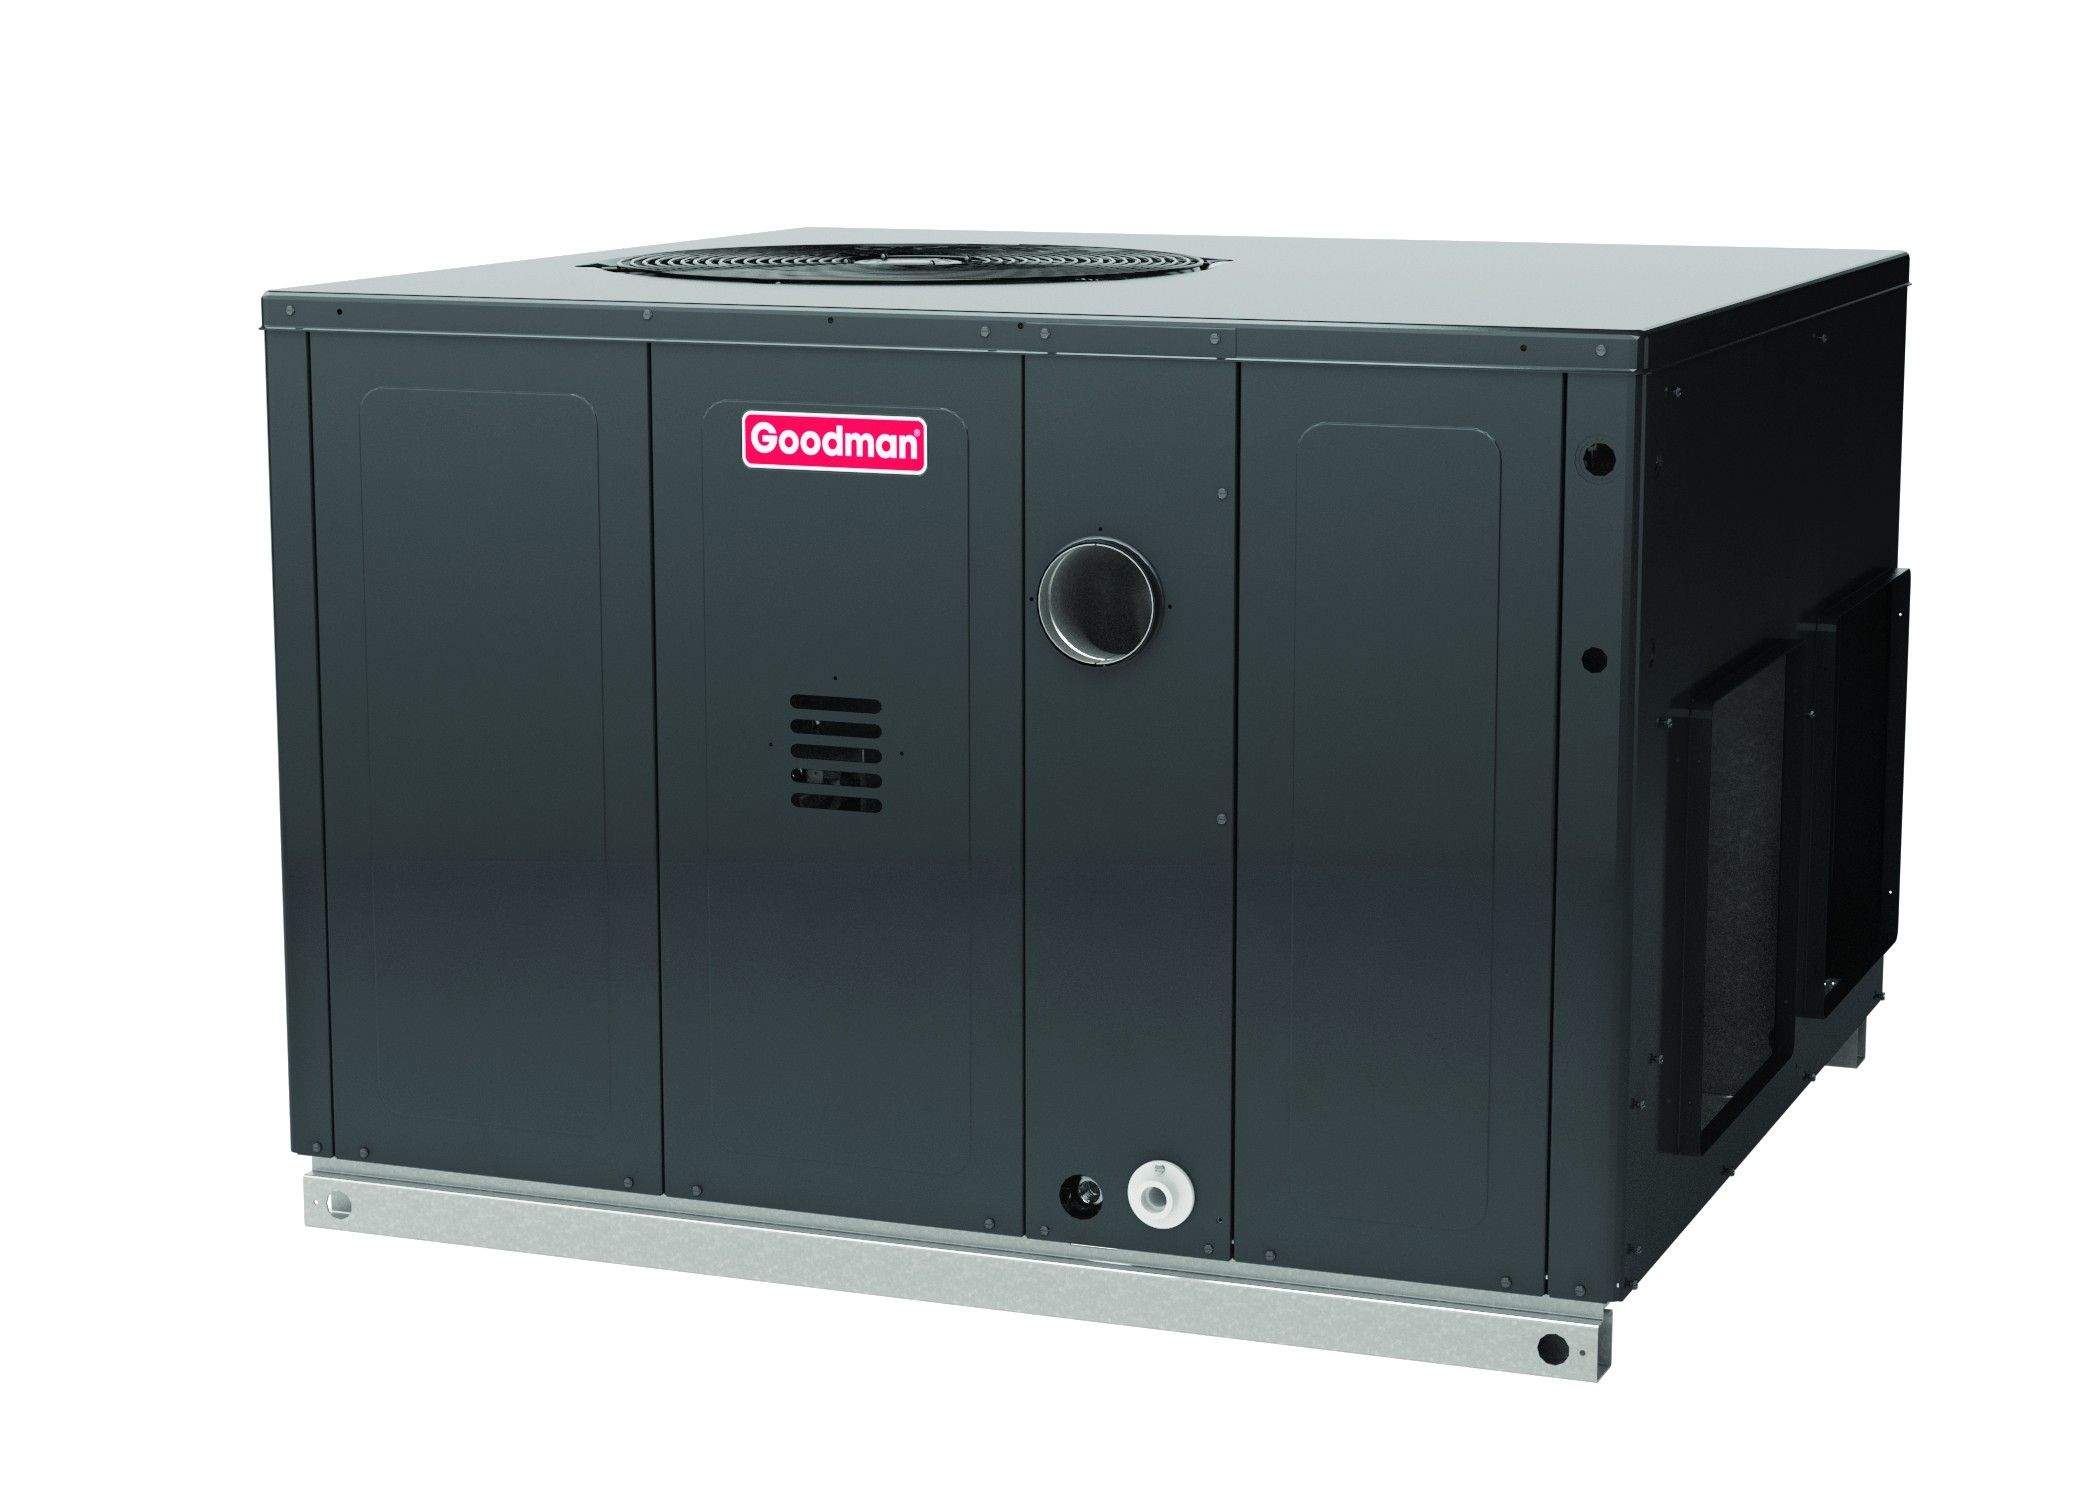 #C6054A Goodman 2.5 Ton 14 SEER 60K BTU Packge Unit With Gas Heat  Best 3053 Furnace And Ac Packages photos with 2100x1500 px on helpvideos.info - Air Conditioners, Air Coolers and more